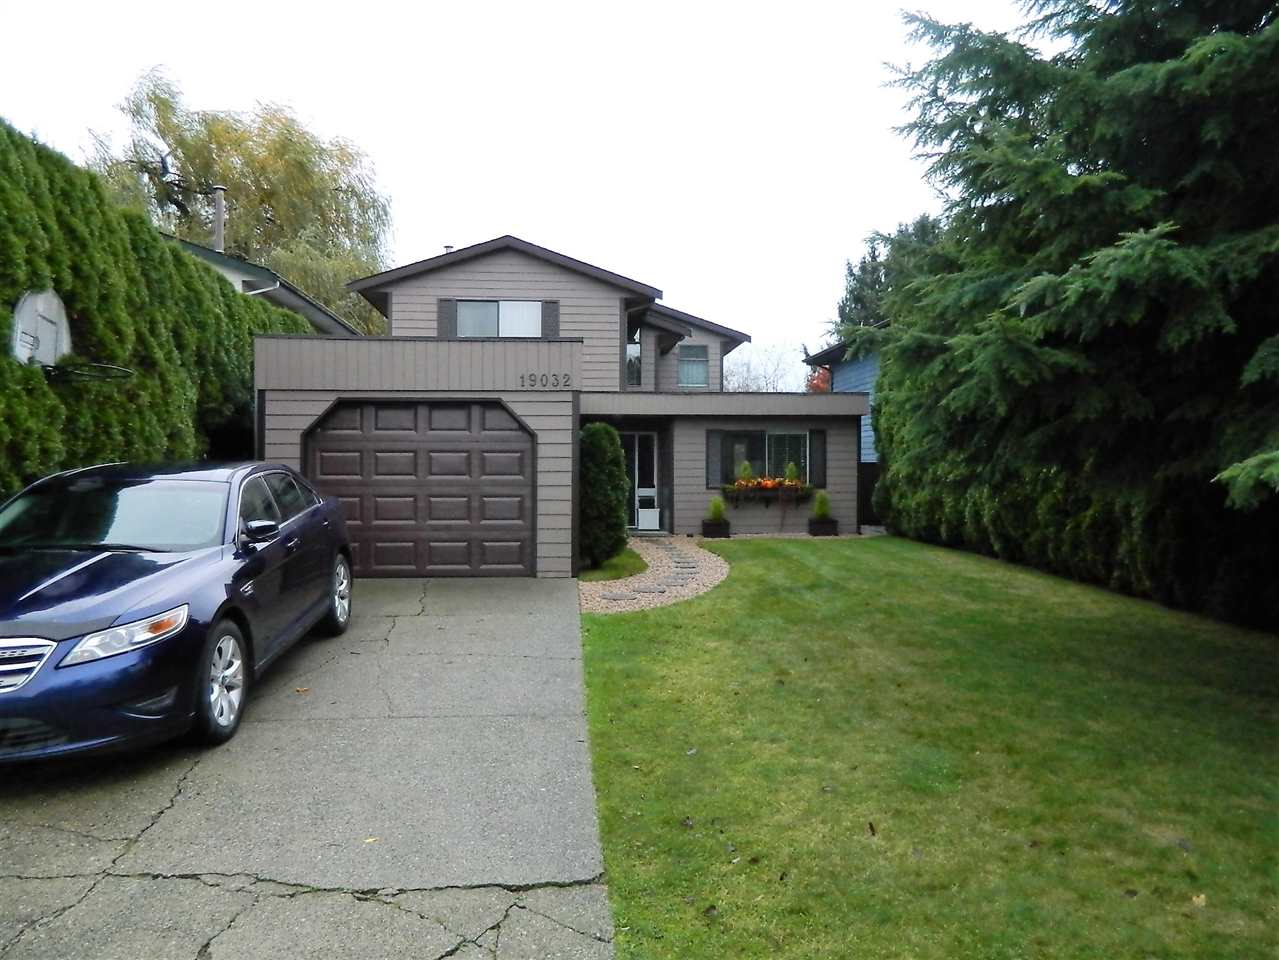 "Main Photo: 19032 117A Avenue in Pitt Meadows: Central Meadows House for sale in ""Parkview Estate"" : MLS®# R2120274"